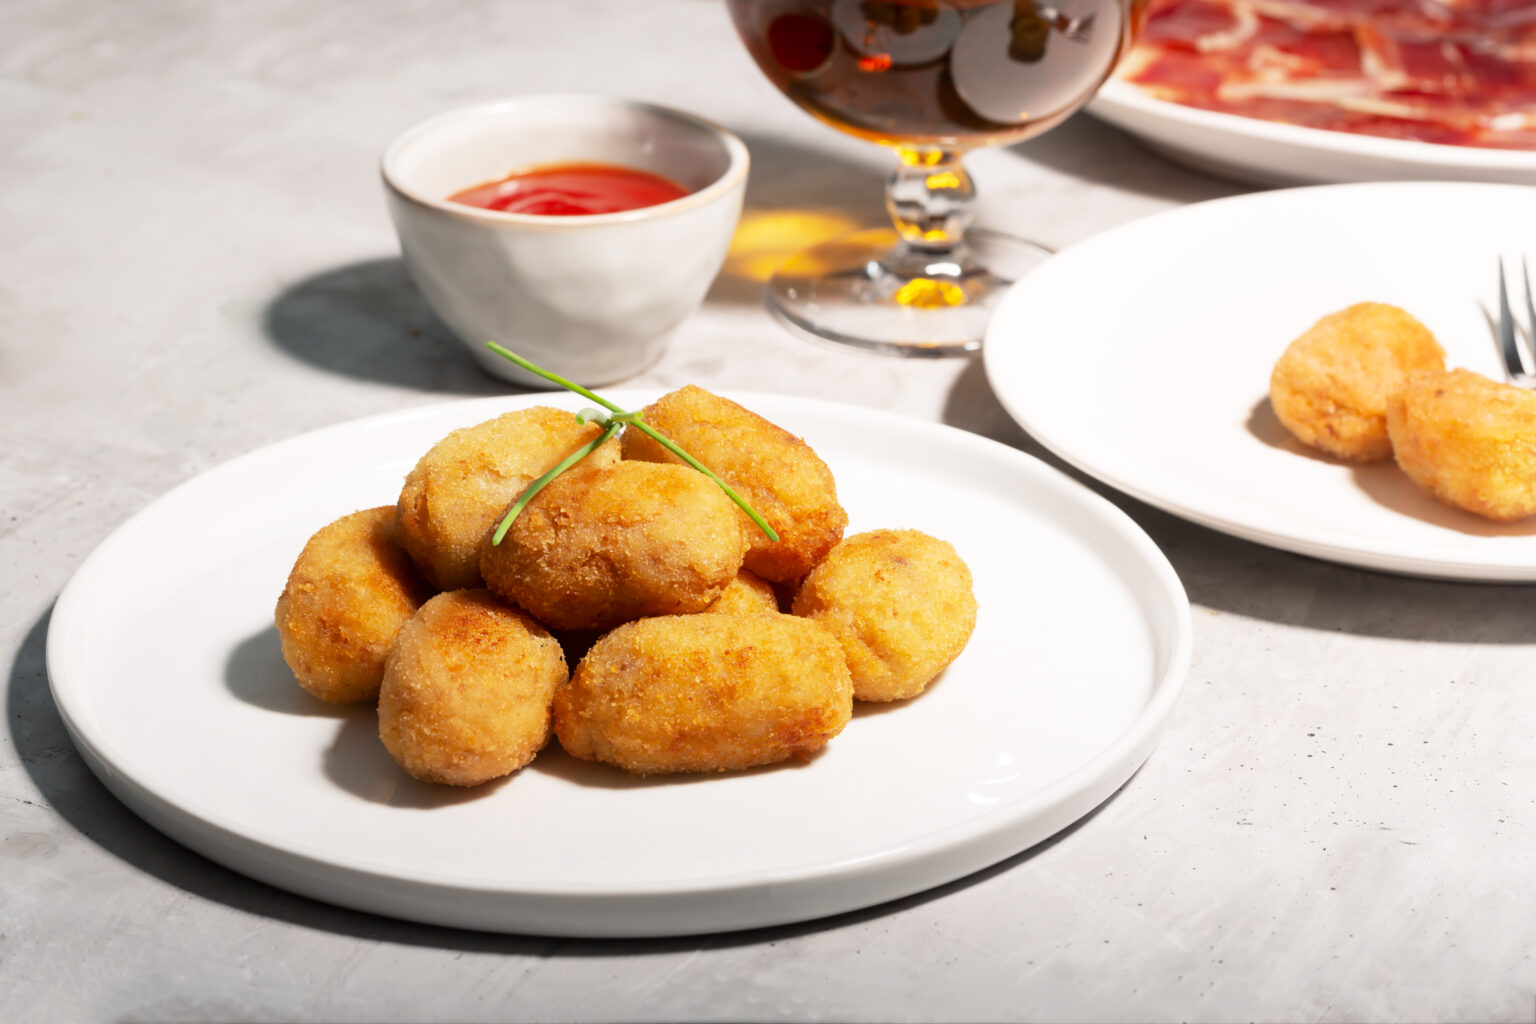 Tapas croquettes, traditional Spanish snack usually prepared with mashed potatoes, meat or vegetables